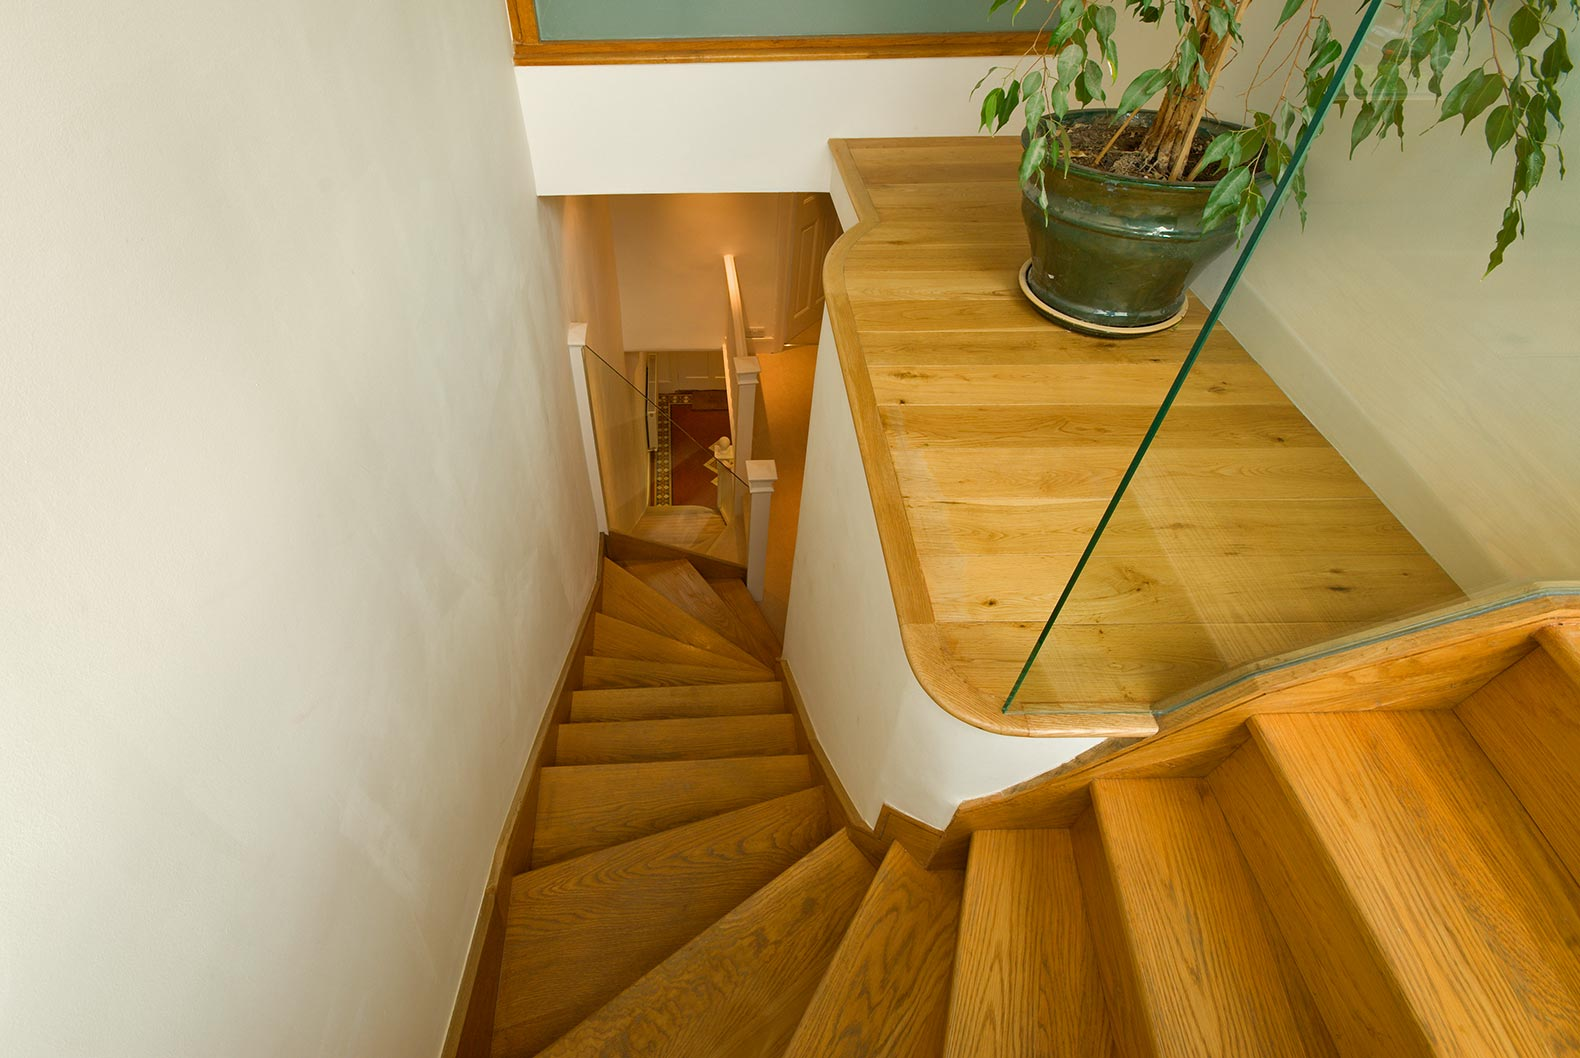 stair to loft extension